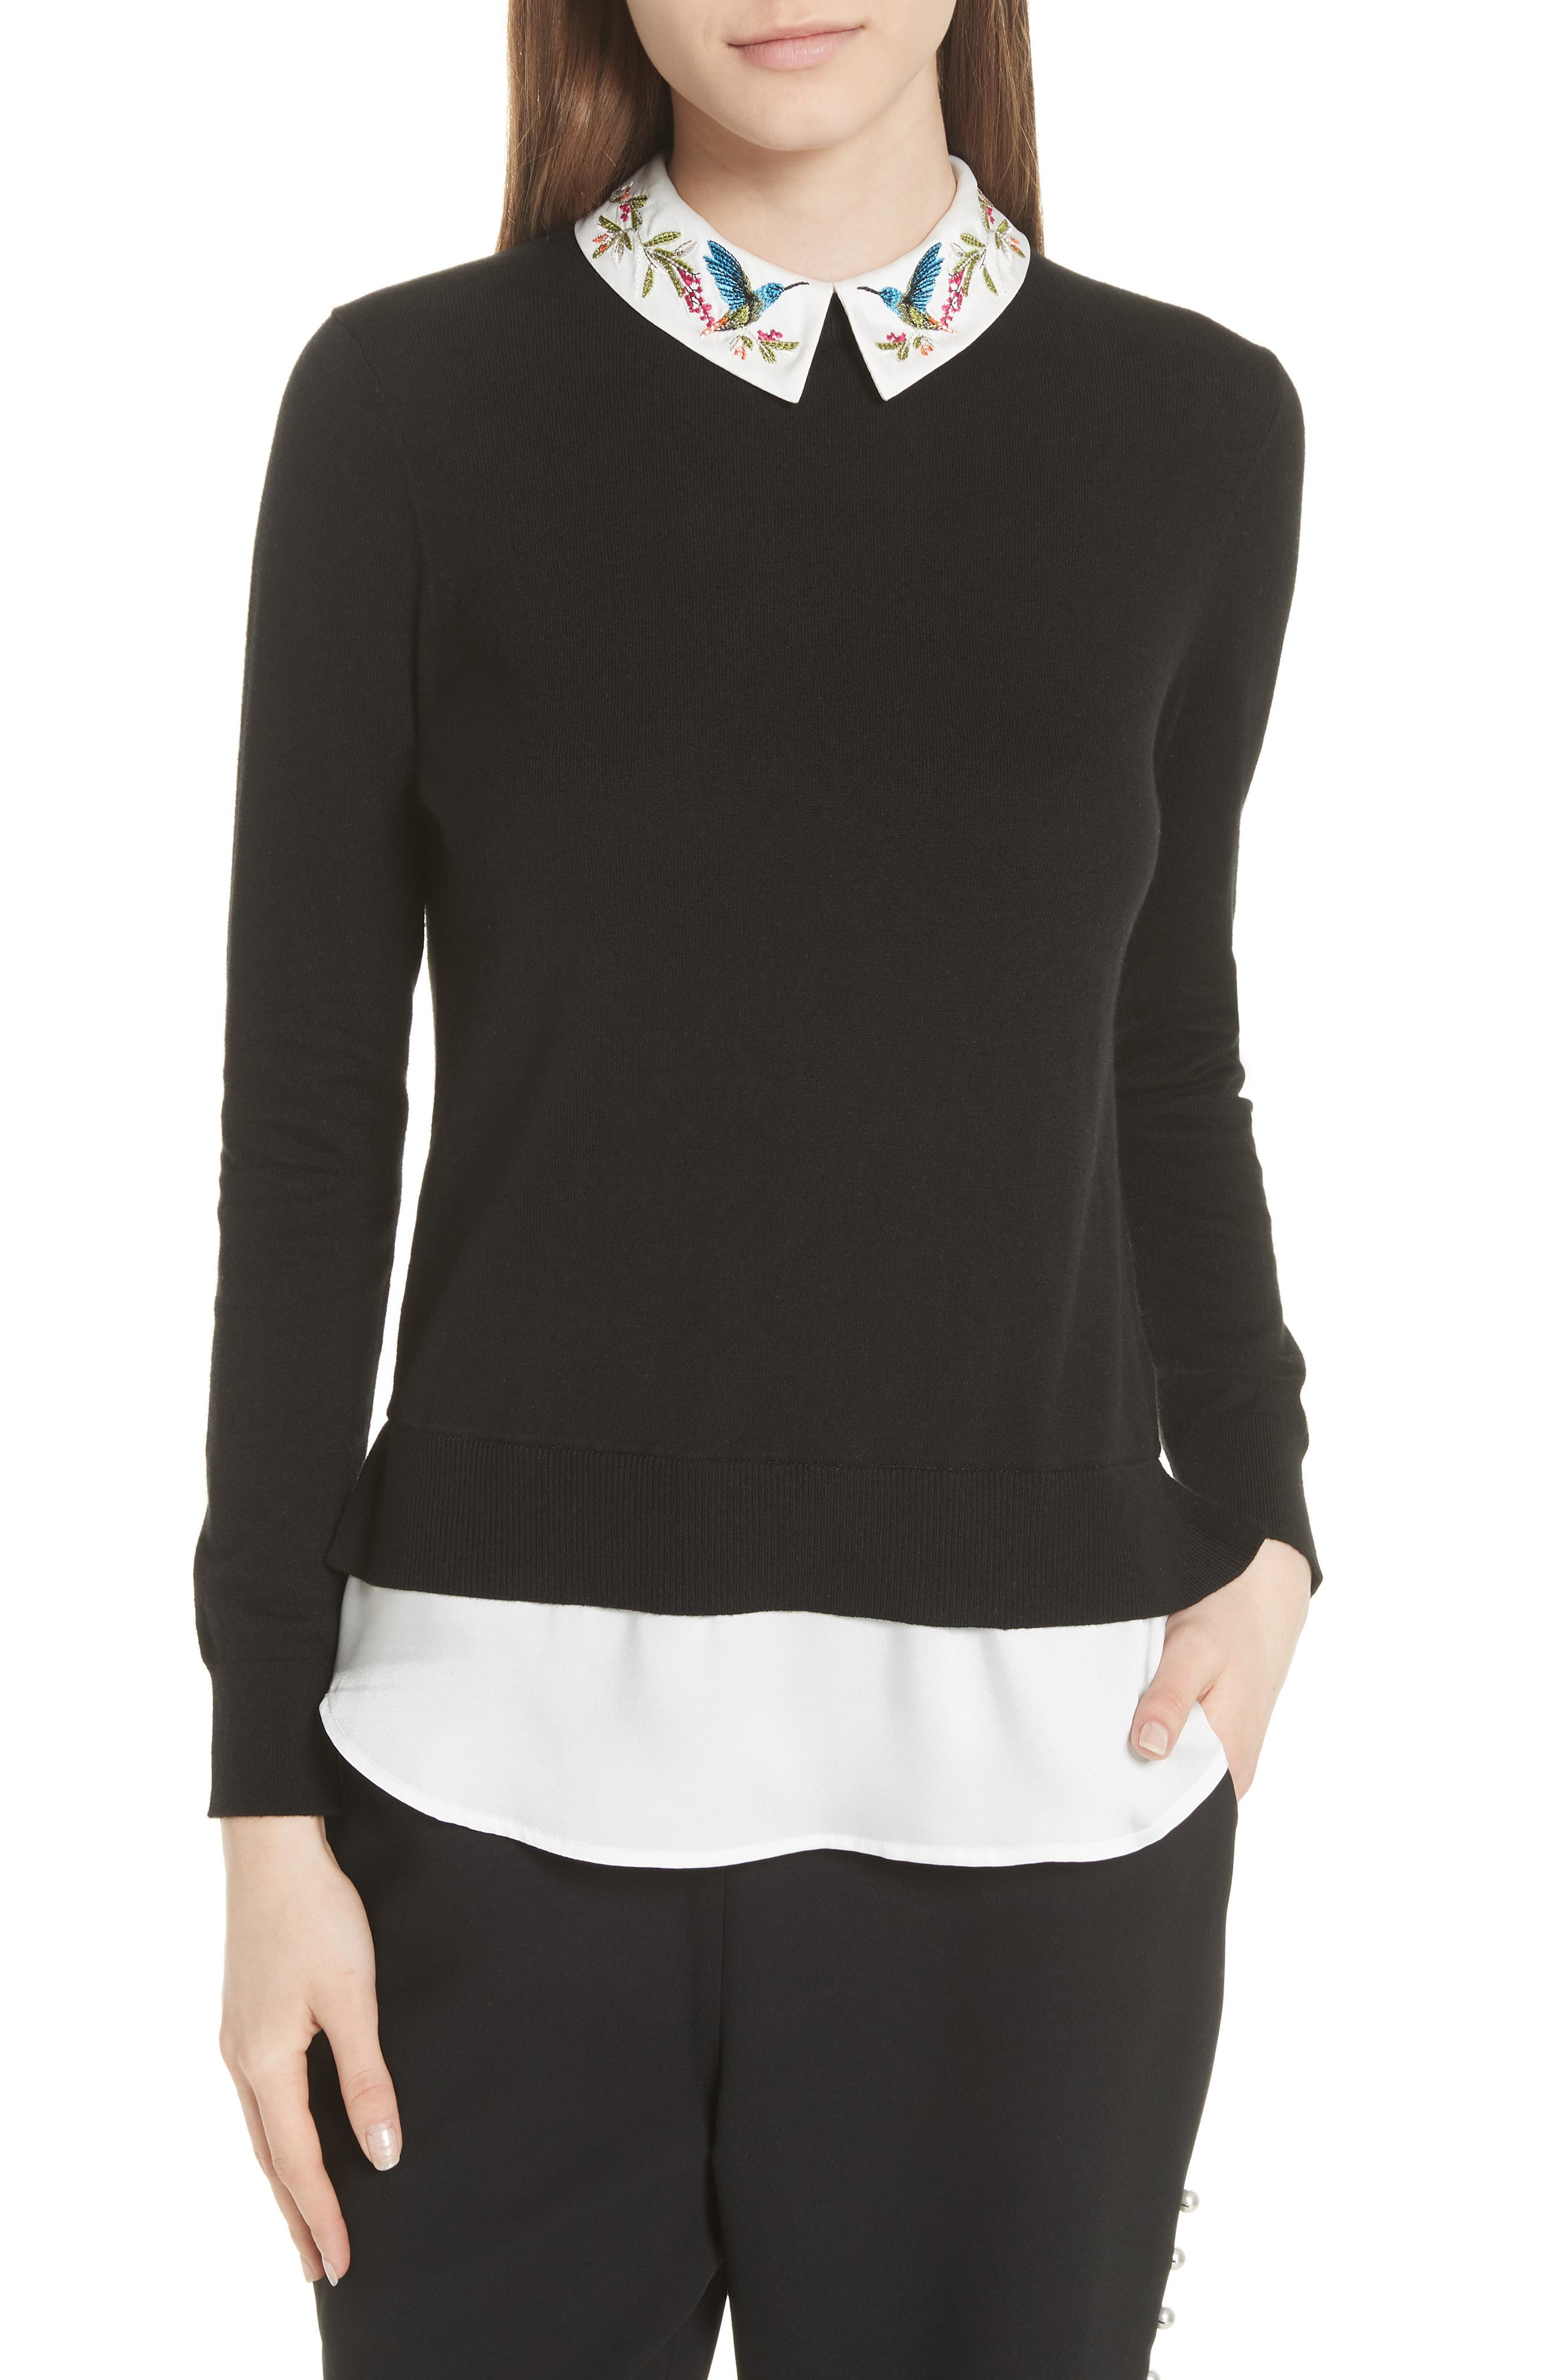 Highgrove Layered Look Sweater,                         Main,                         color, Black